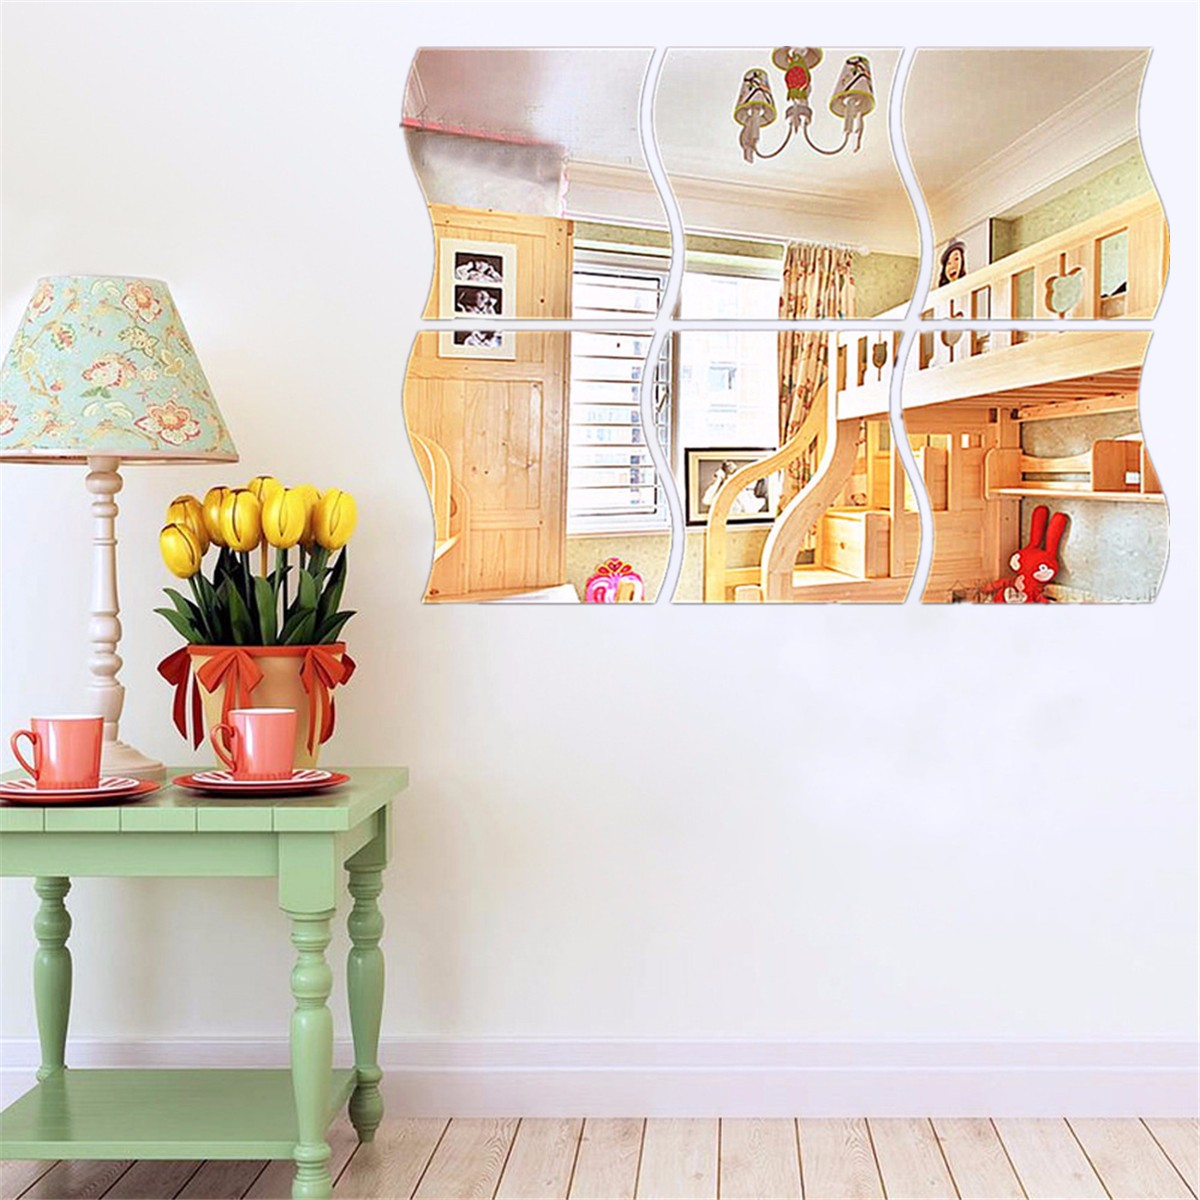 30 PCS 3D Acrylic Modern Mirror Wall Stickers Vinyl Removable Home View Window Decal Art Decor Mural For Home Living Room Decoration